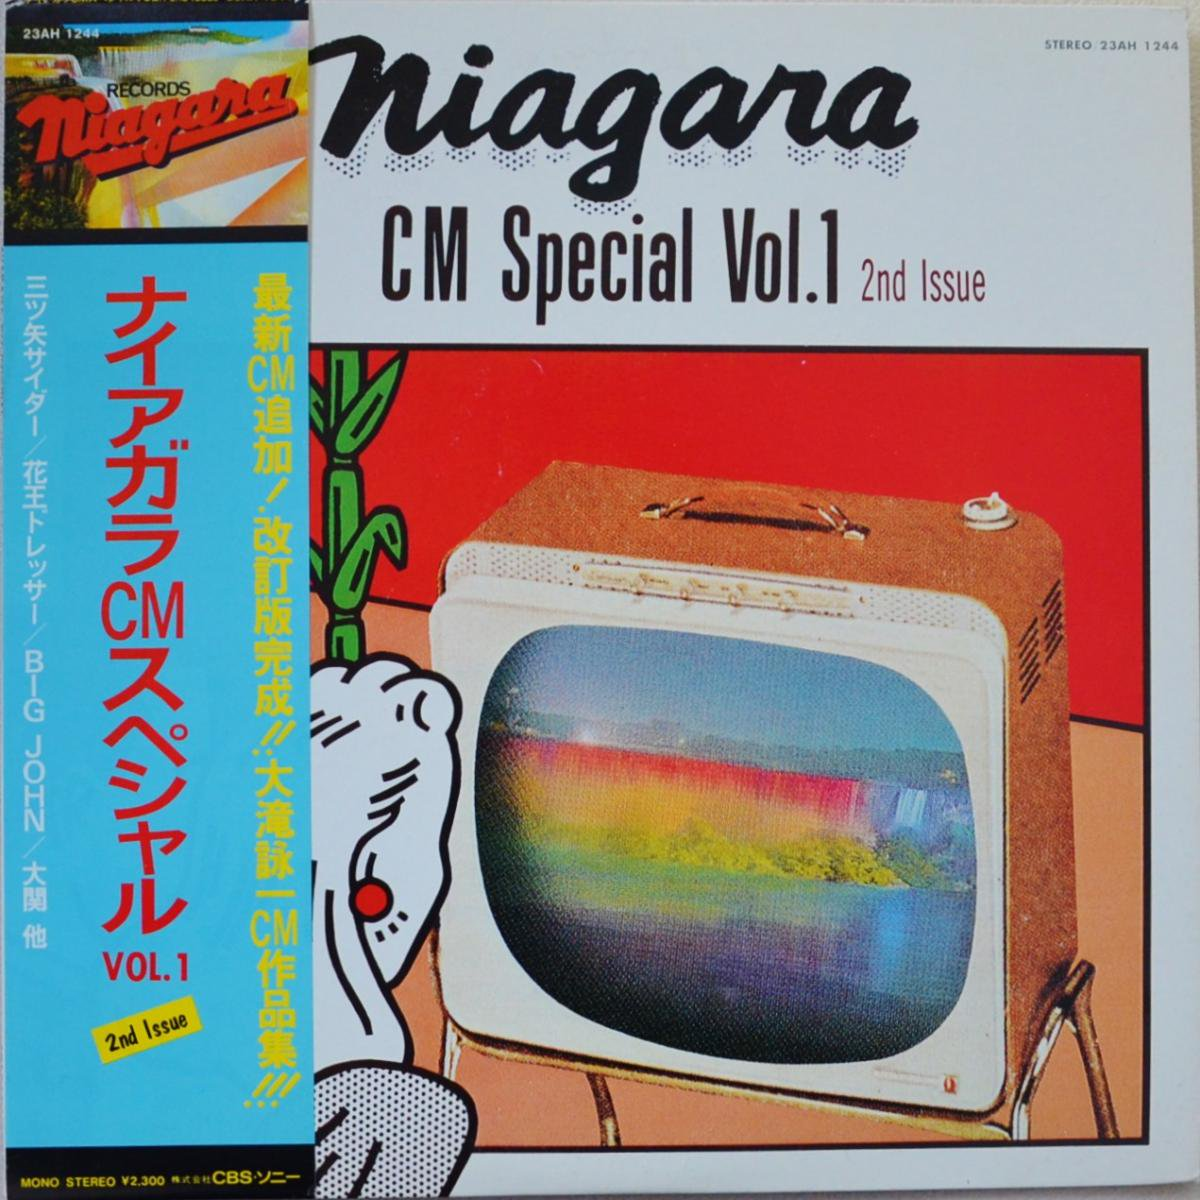 V.A. / ナイアガラ CMスペシャル VOL.1 (2ND ISSUE) NIAGARA CM SPECIAL VOL.1 (10